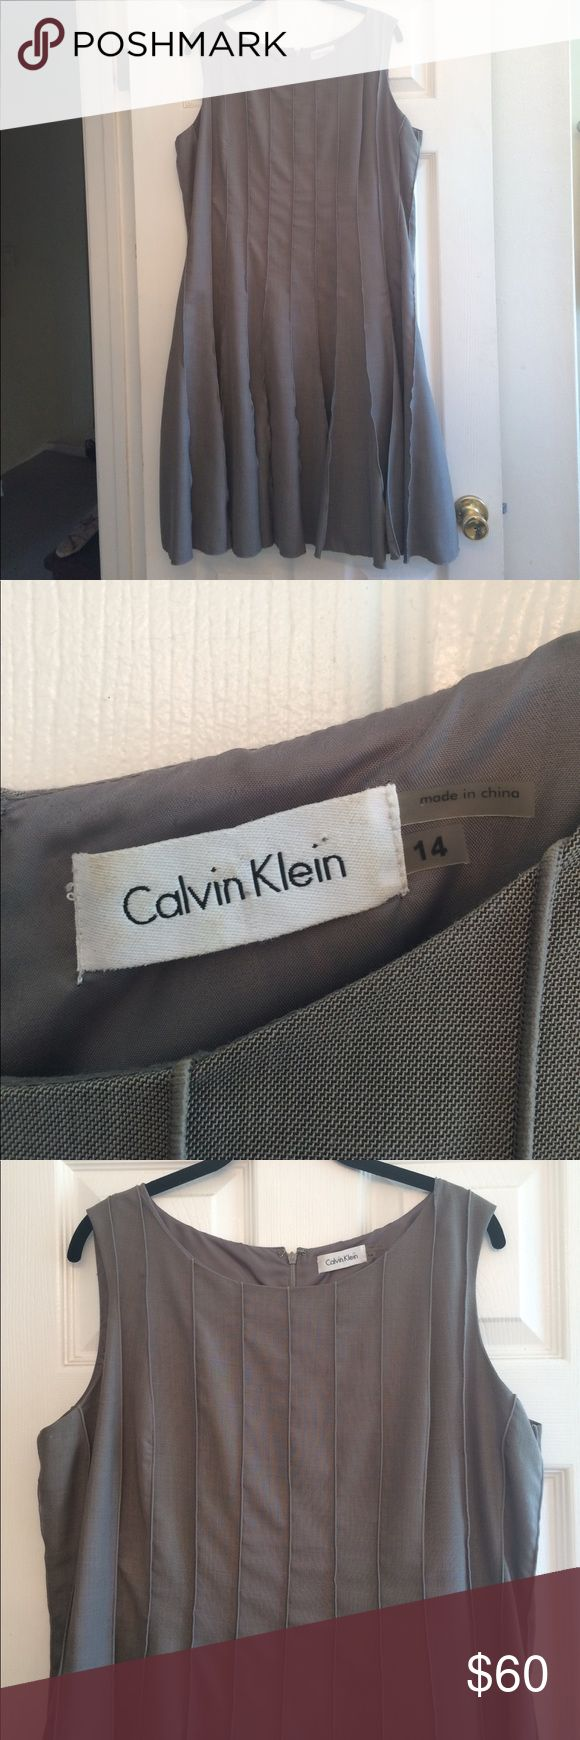 🍍Host Pick🍍 Fit n Flare dress Super cute grey dress from Calvin Klein. Excellent condition, wore once to a wedding. Very small spot on back (can be seen in lower left area of last picture). Extremely flattering cut and vertical stitching. Back zipper with hook and eye, all completely intact. Feel free to make an offer! Calvin Klein Dresses